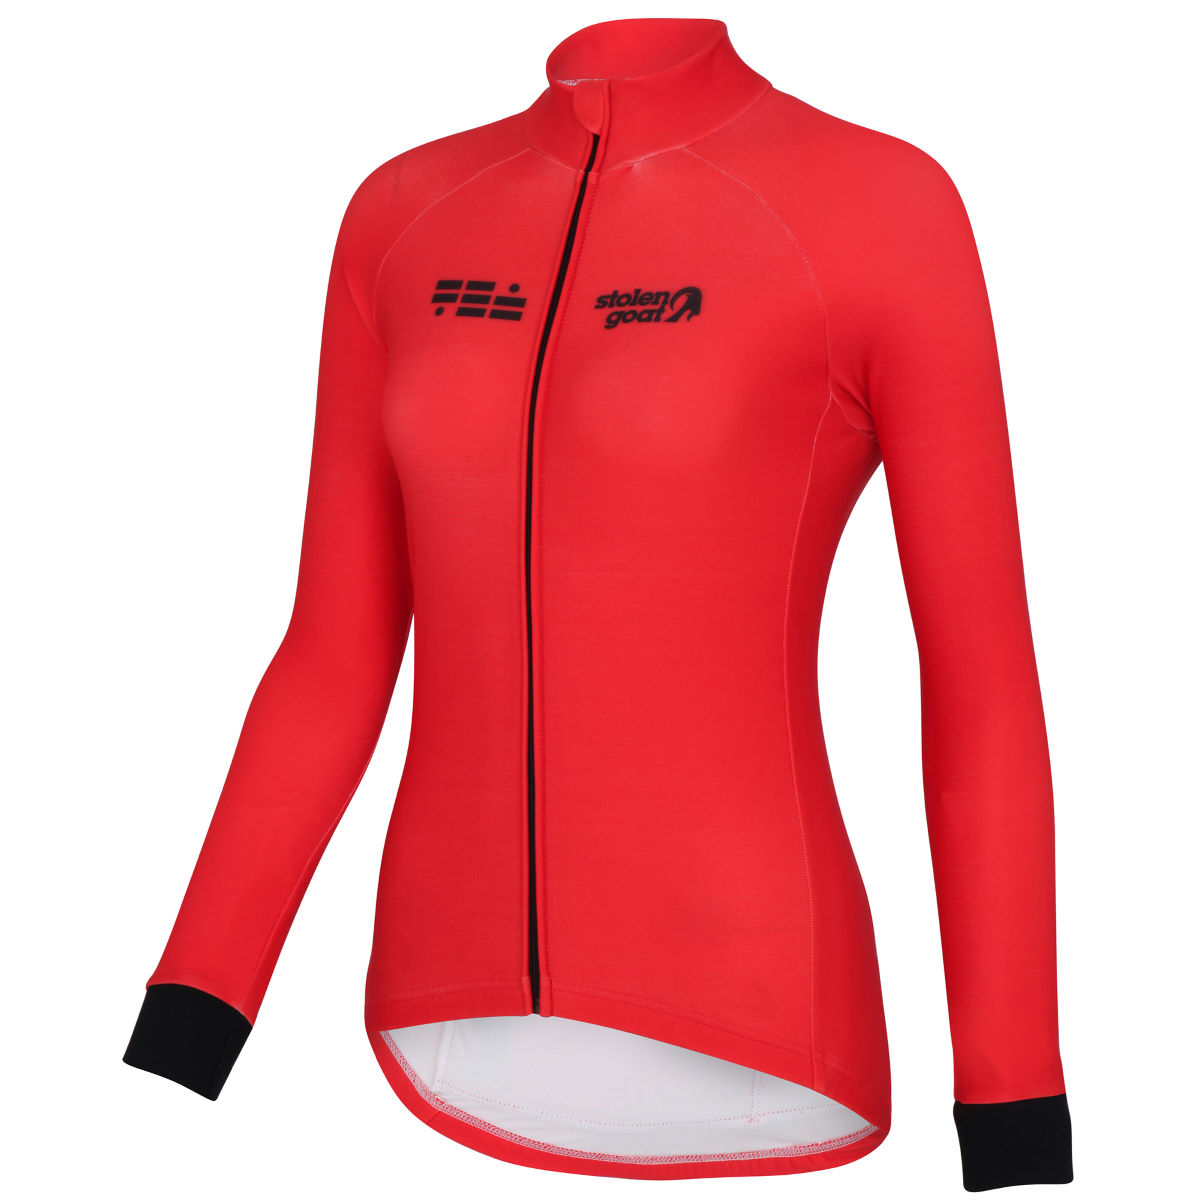 Maillot Femme Stolen Goat Orkaan Everyday (manches longues) - XL